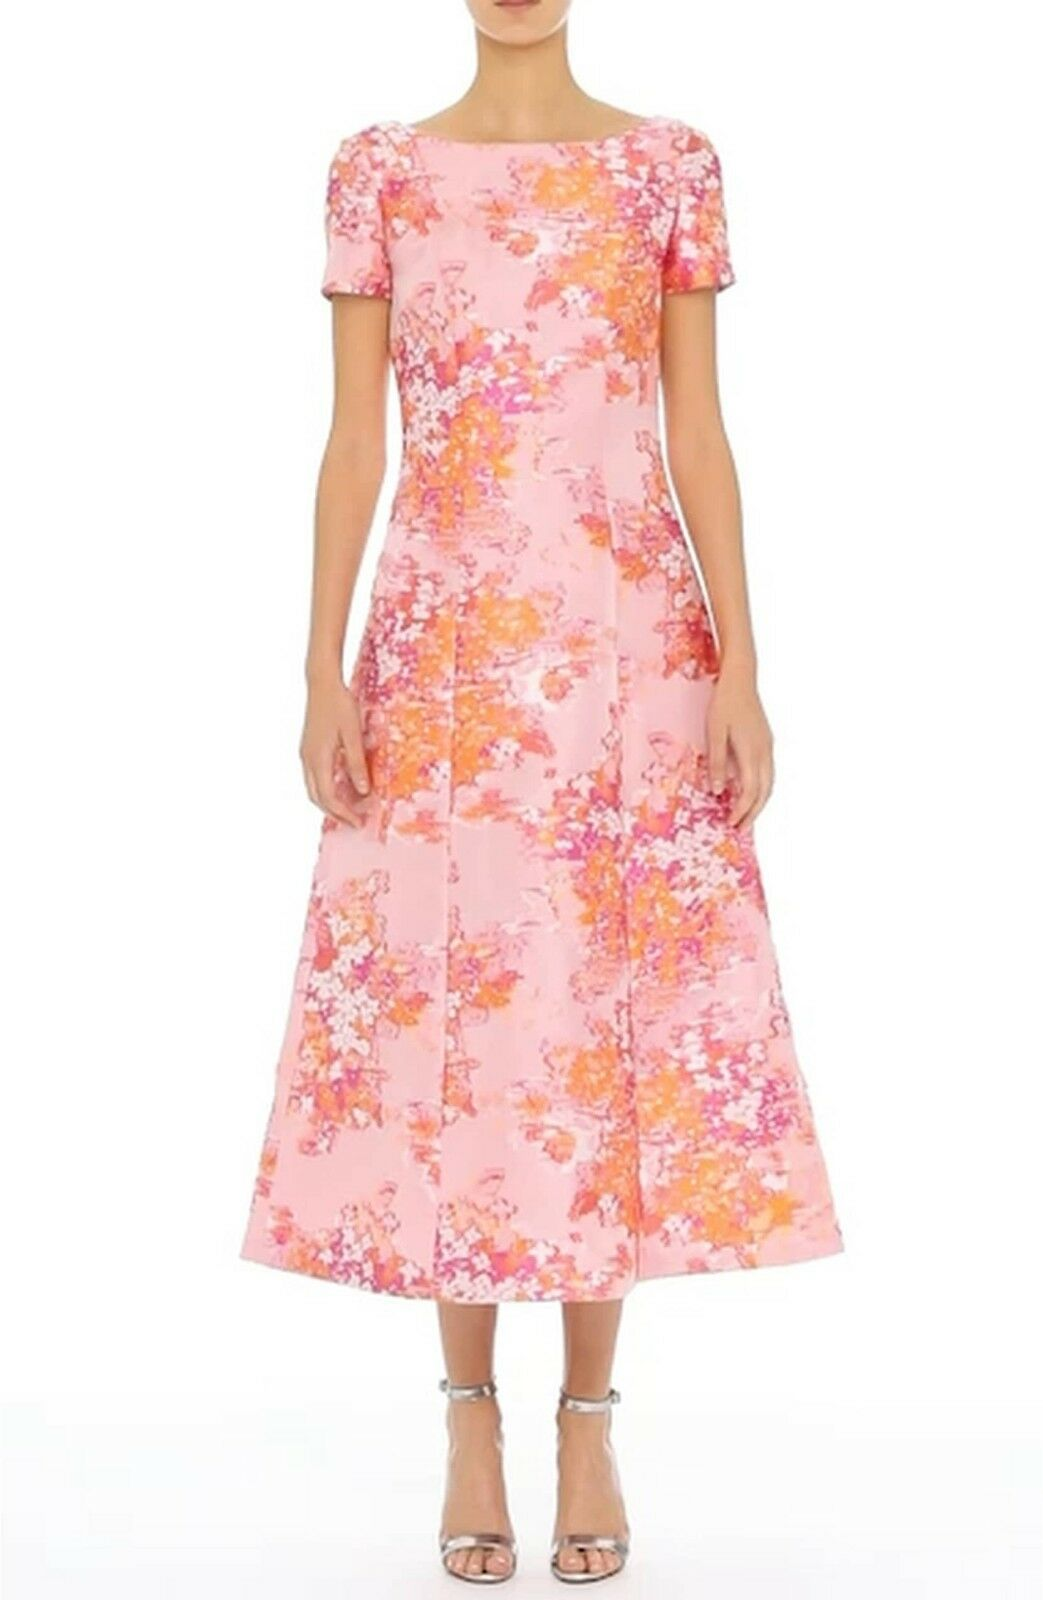 St. John Collection Washed Bouquet Jacquard Dress   ( Size 12 )